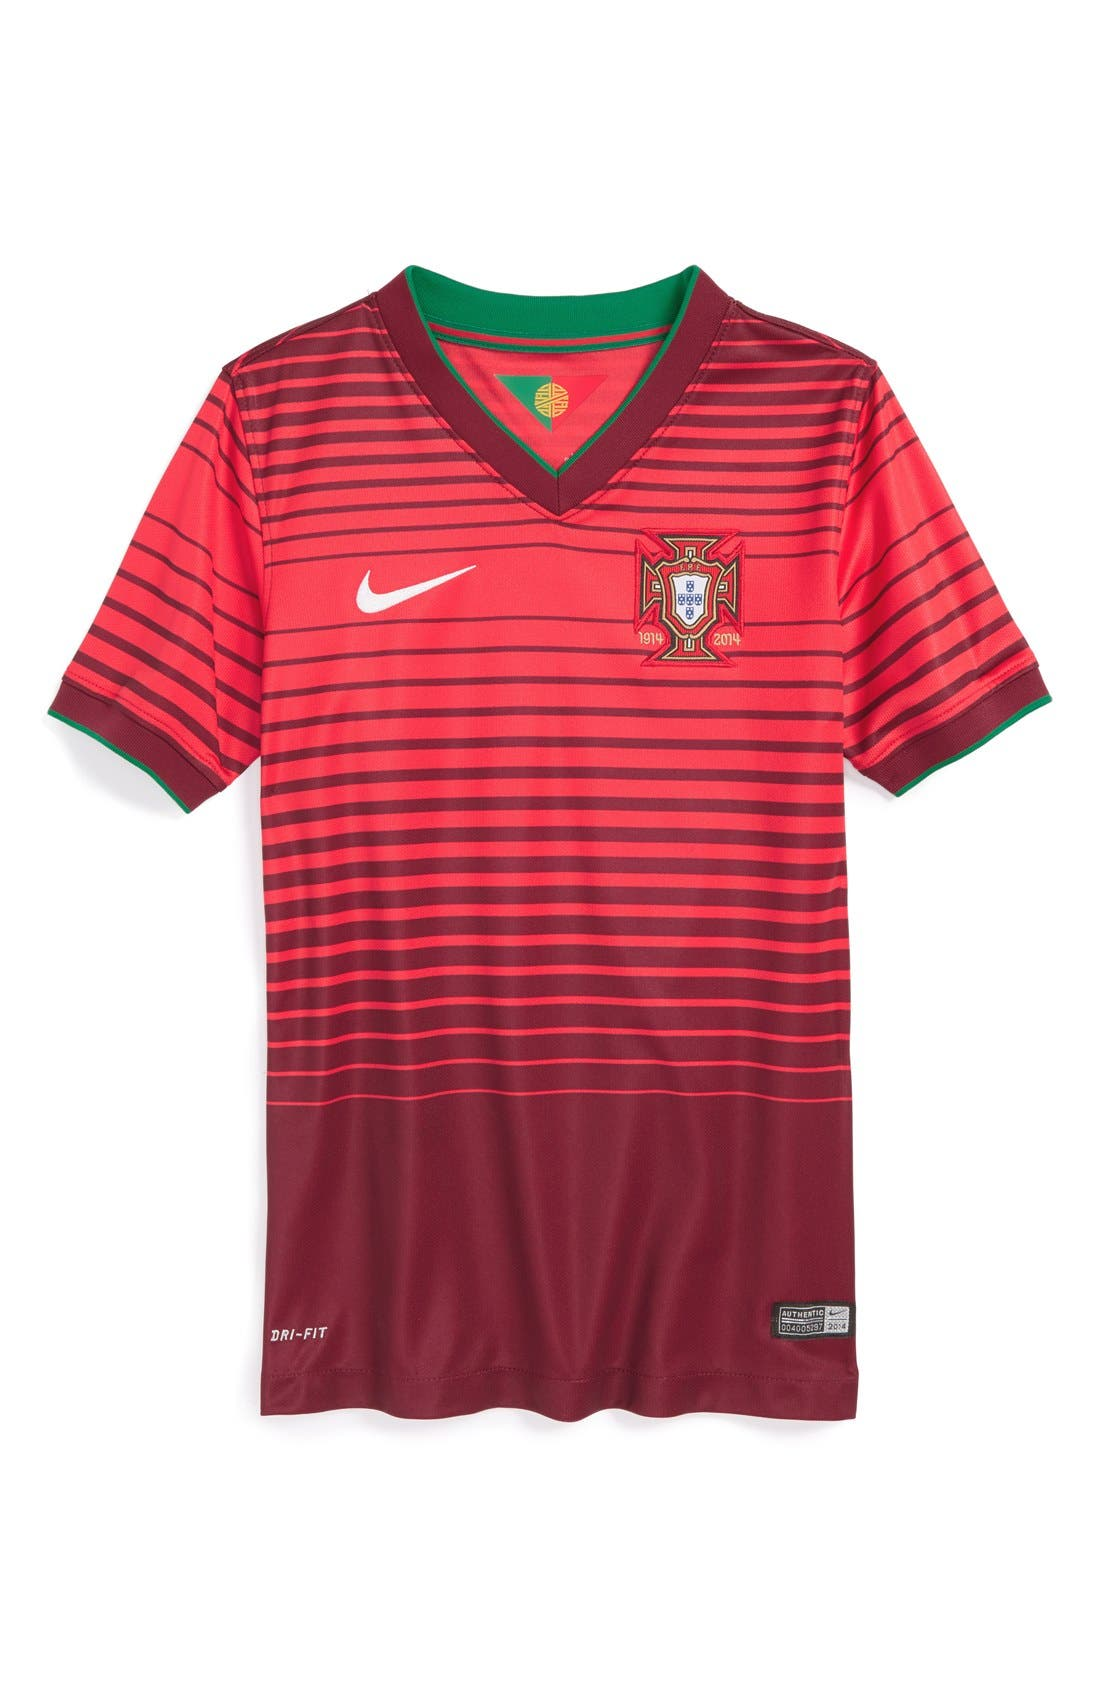 Alternate Image 1 Selected - Nike 'Portugal - 2014 Stadium' Dri-FIT World Soccer Jersey (Big Boys)